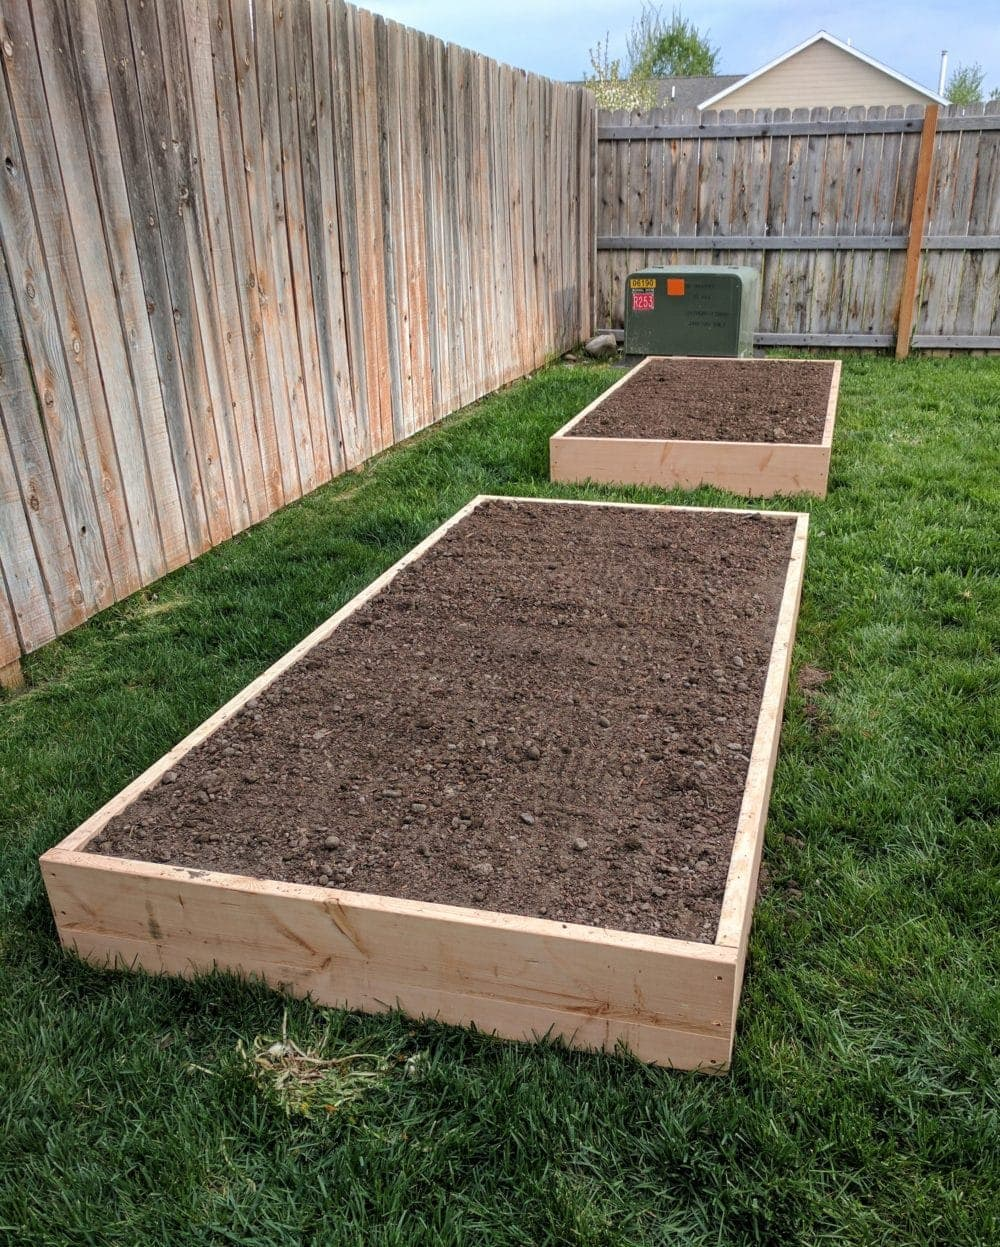 Two raised garden beds full of soil ready to be planted